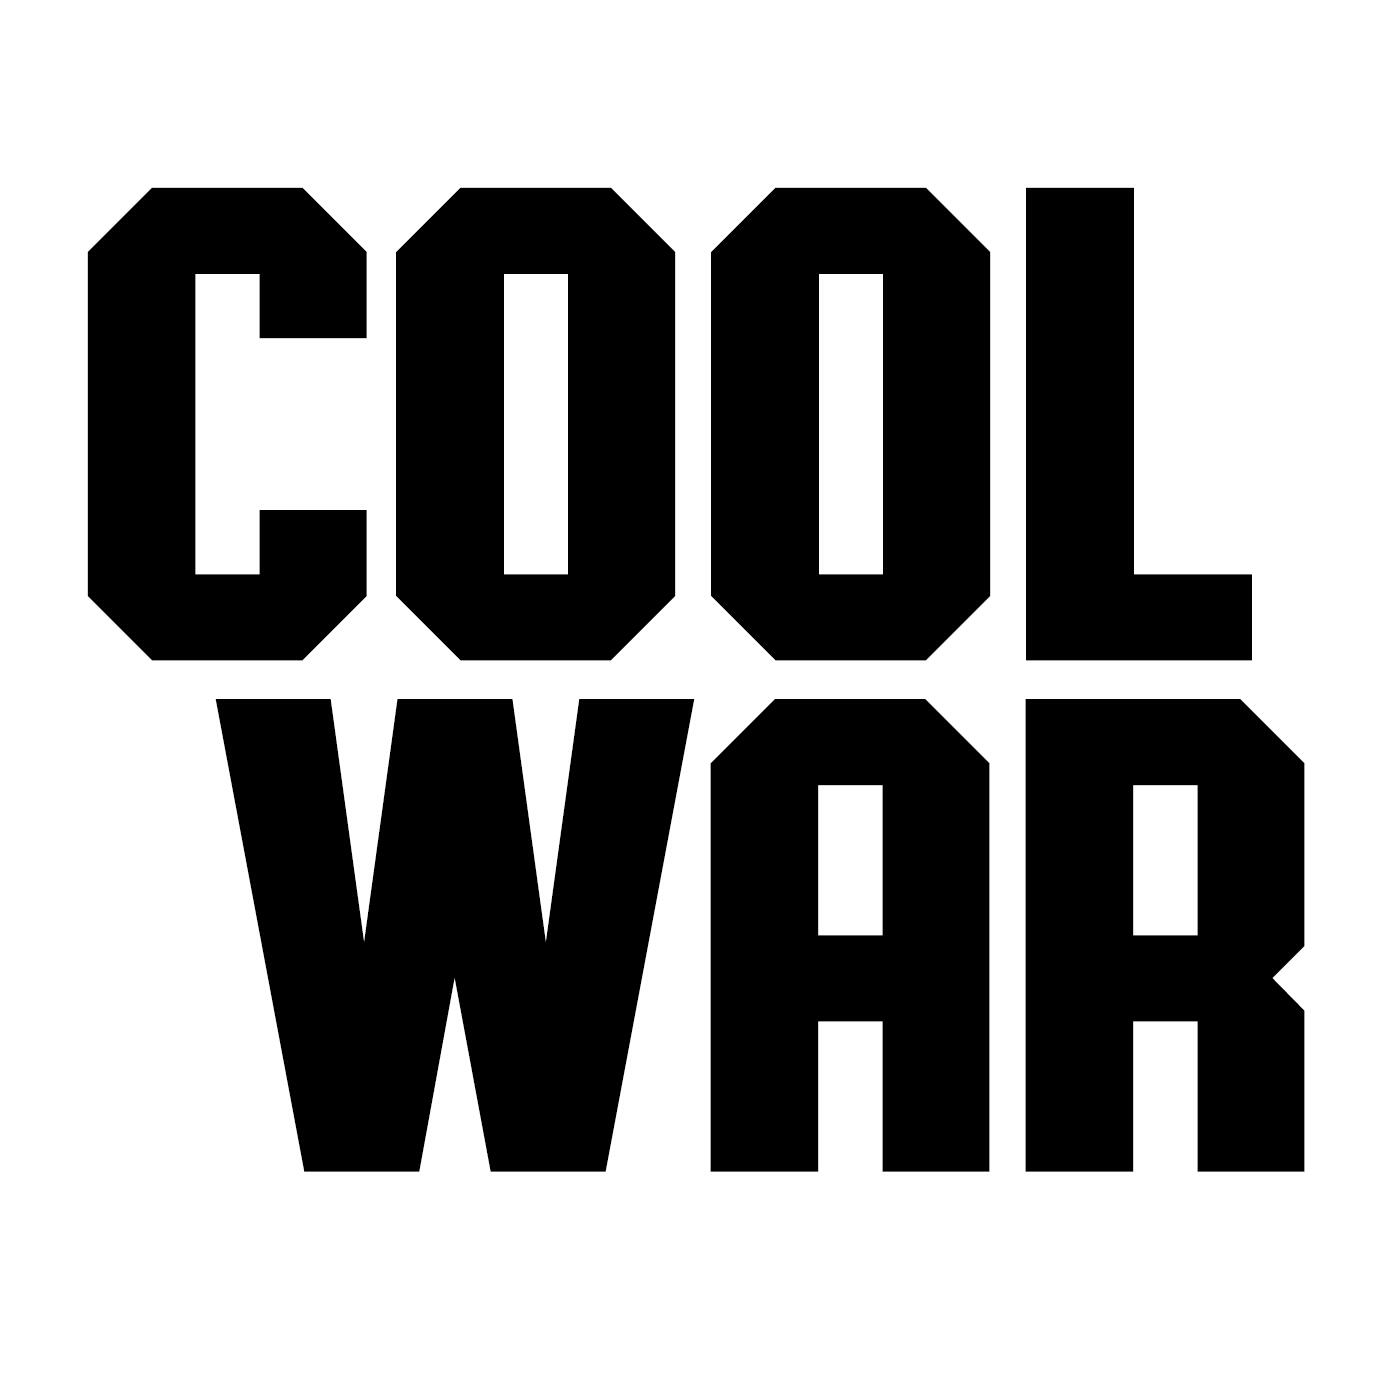 Cool War - Dispatches from the Iron Curtain